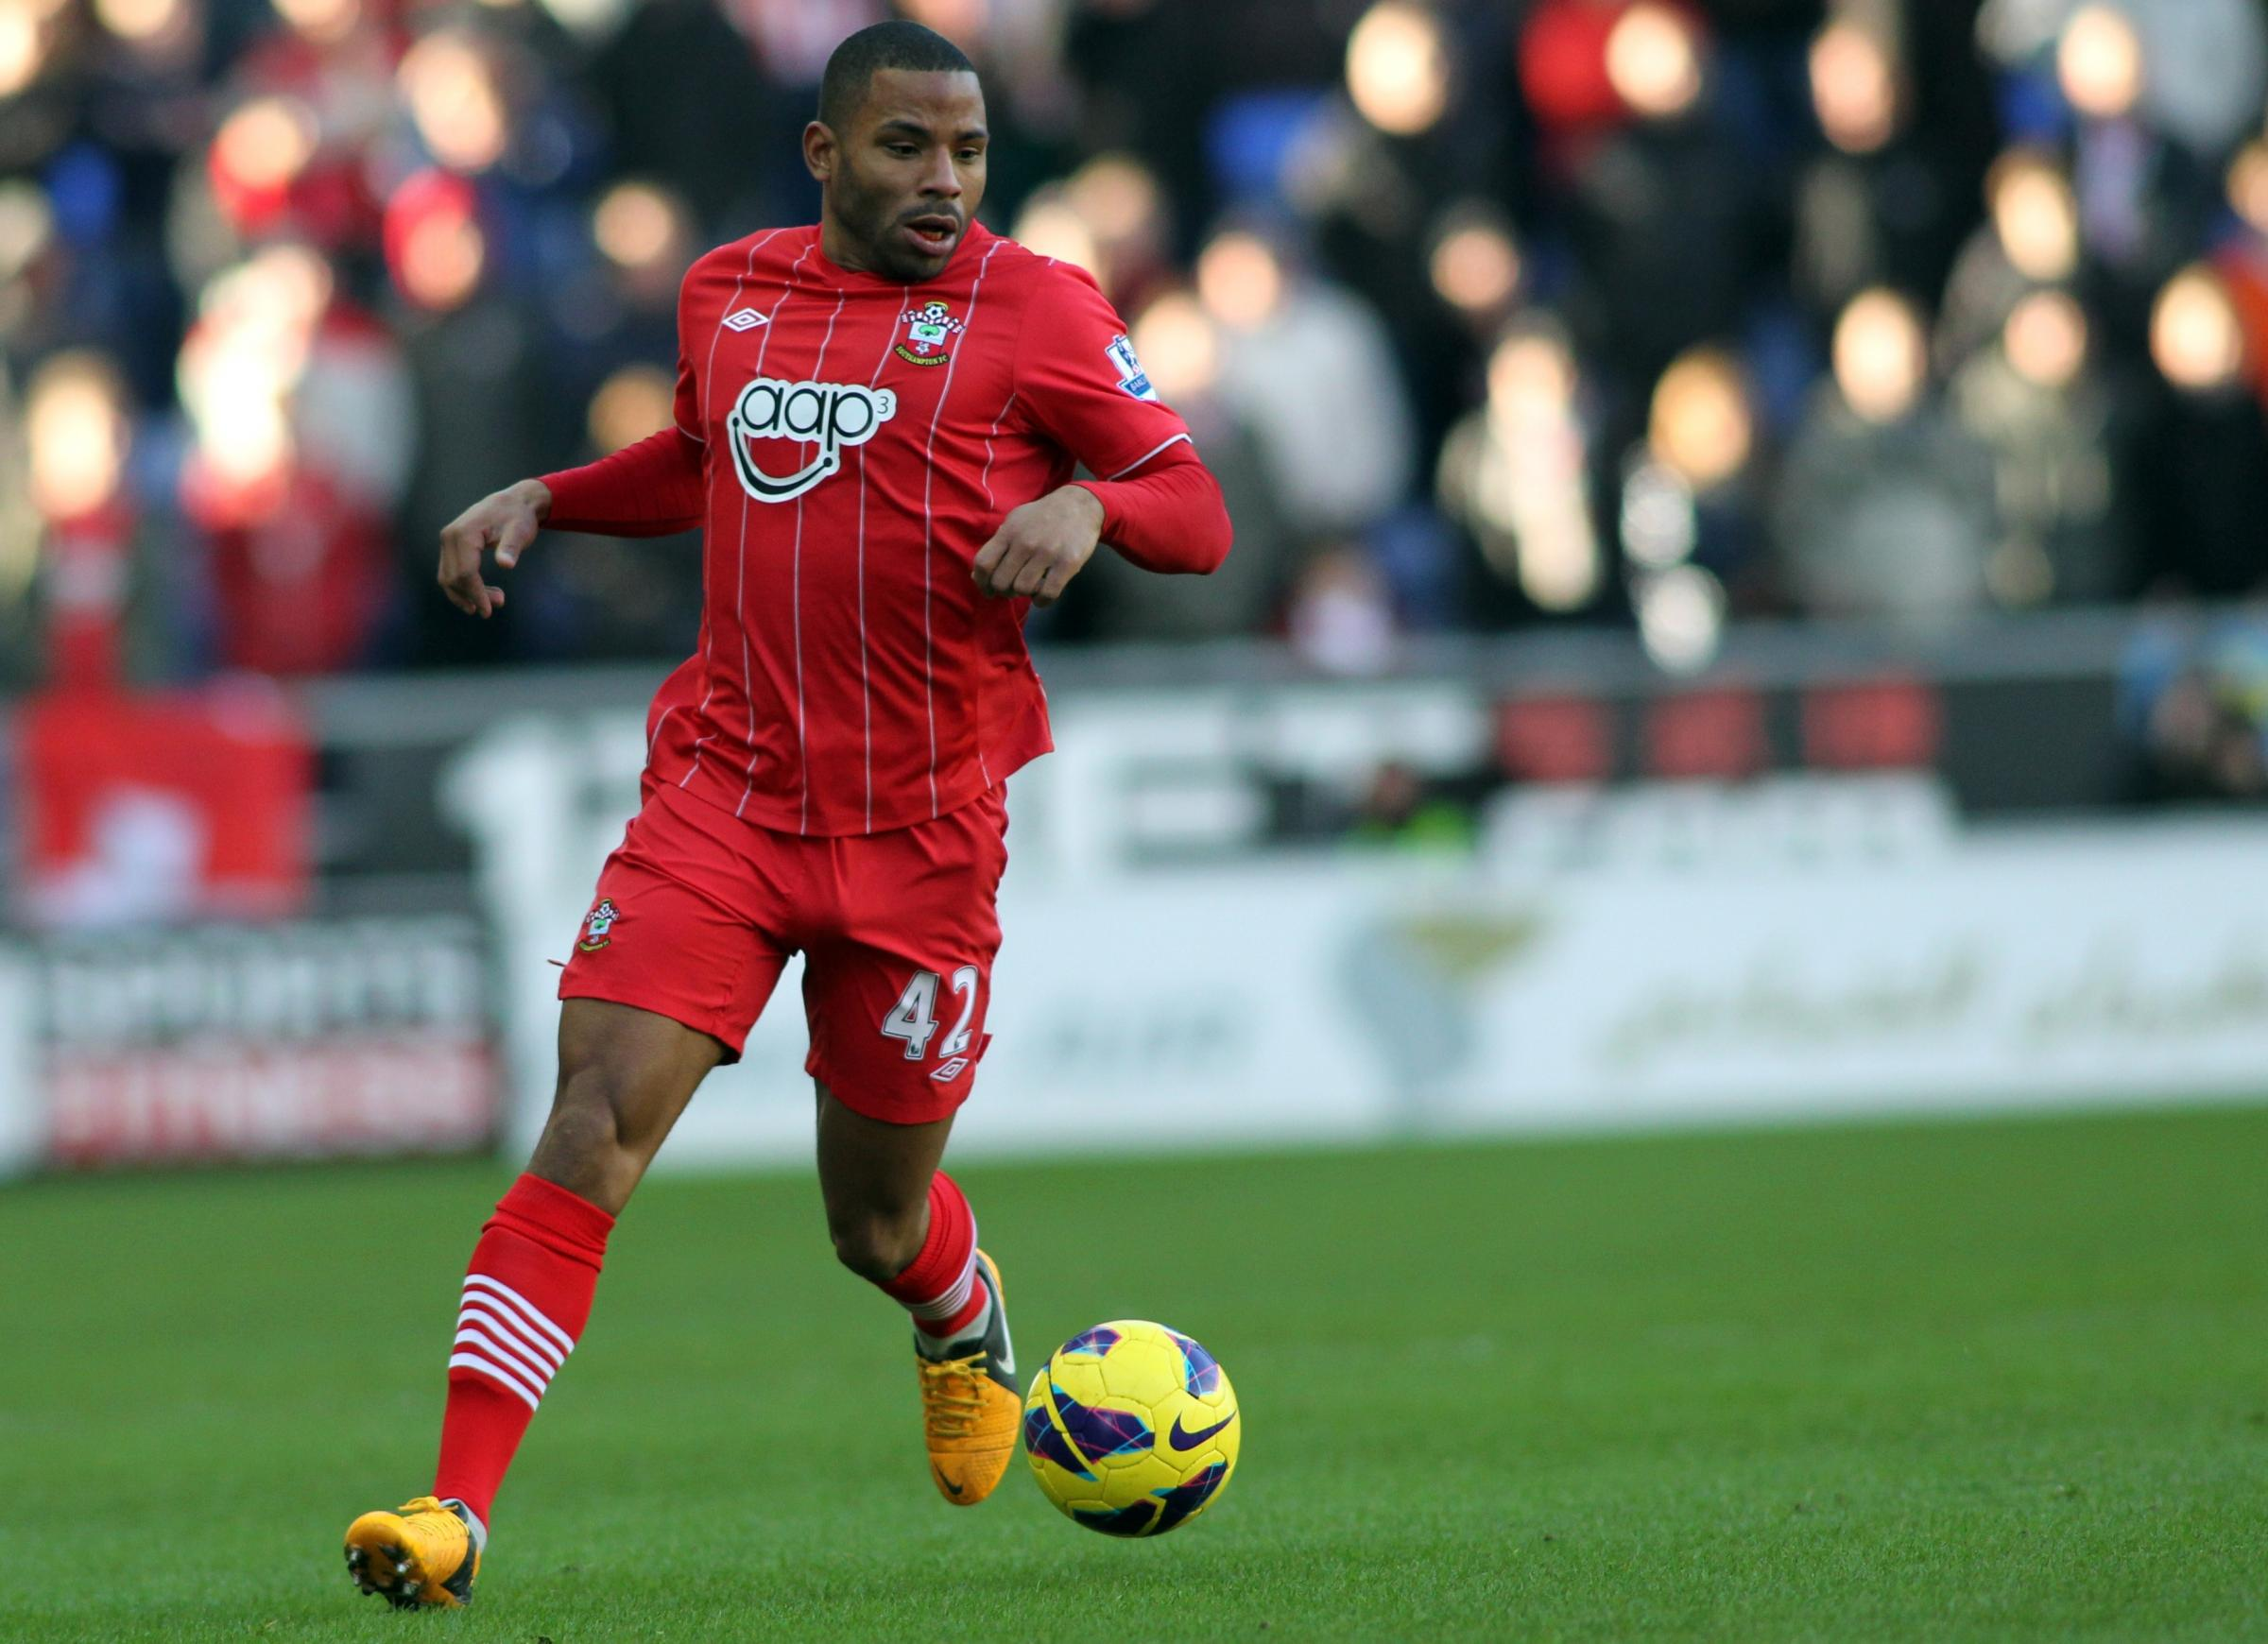 Jason Puncheon playing for Saints